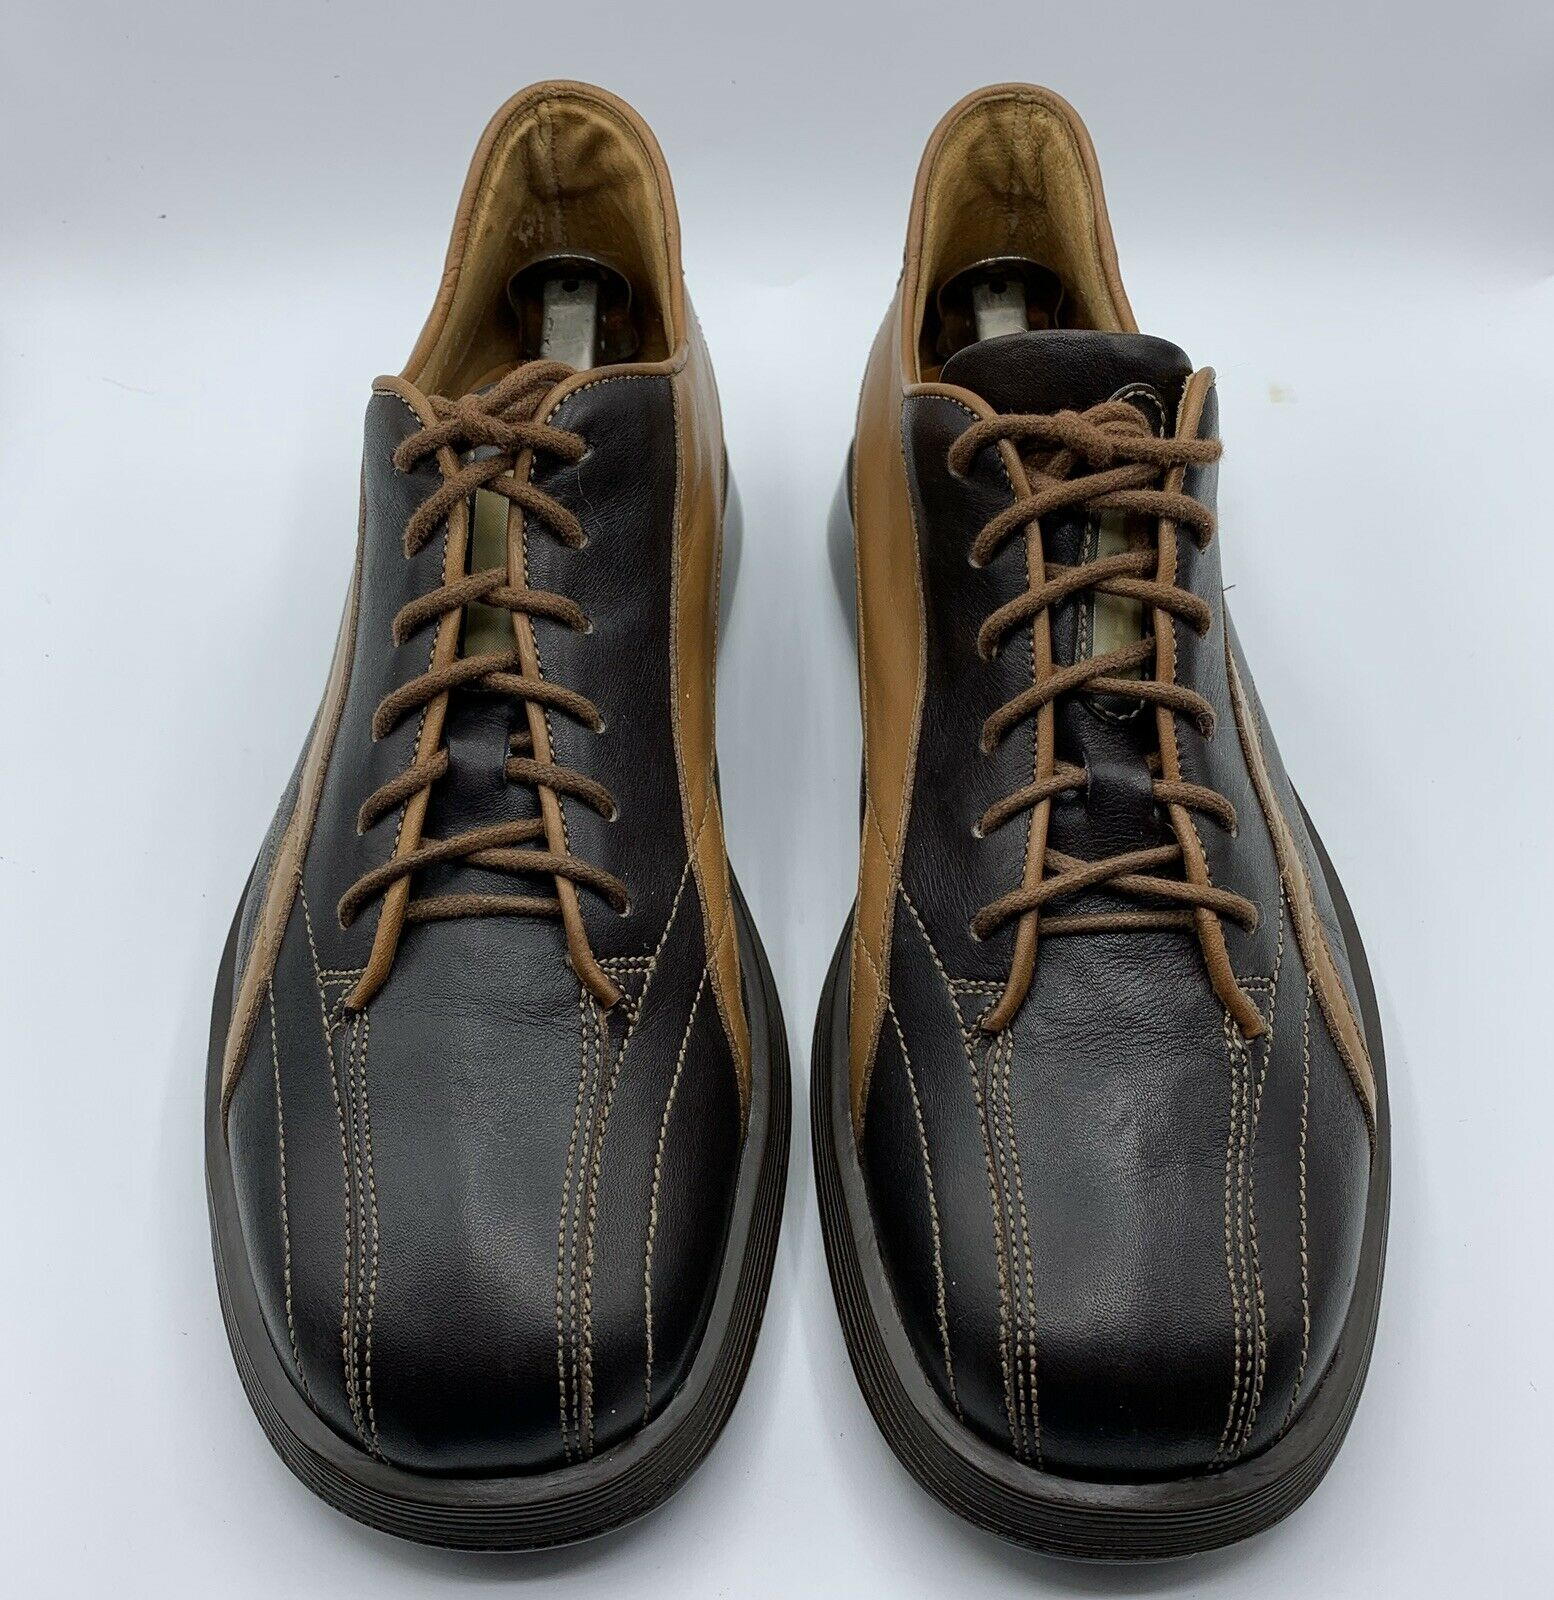 BASTIANELLI FOR BARNEYS NY OLD SAIL BROWN SOFT LEATHER MEN SHOES EU 42/ US 8.5